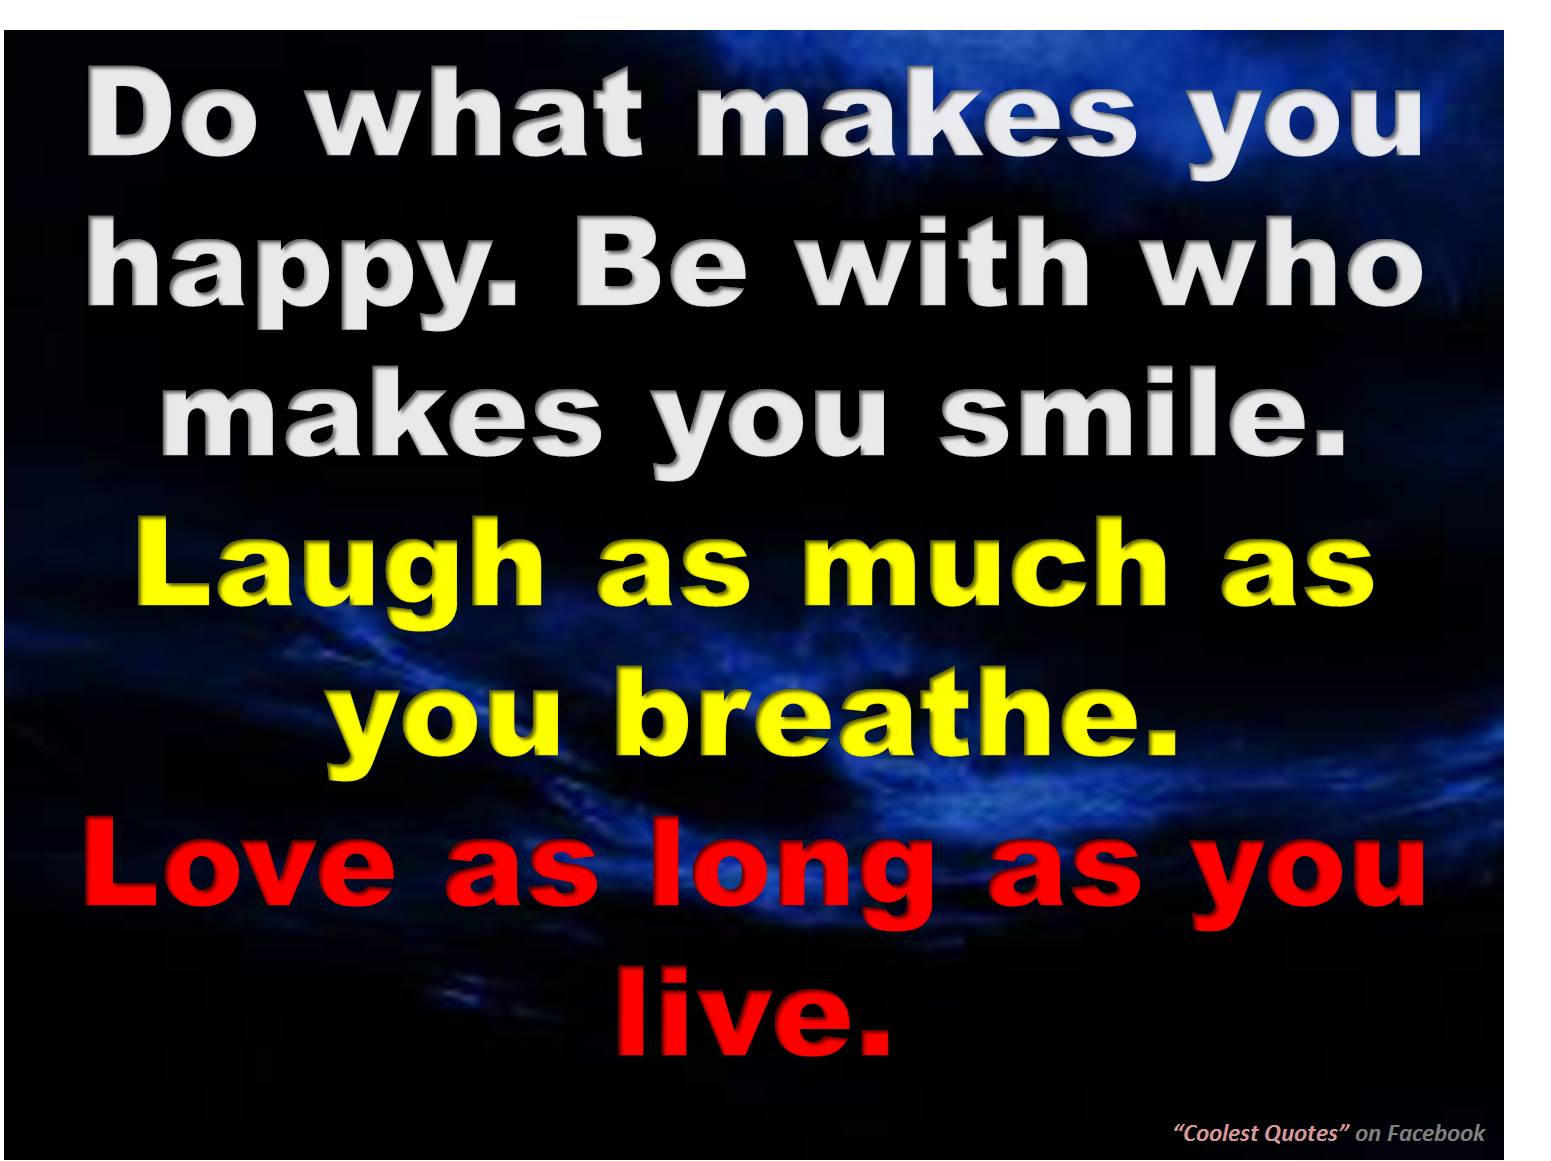 Quotes On Smile My Coolest Quotes Beautiful Quote For A Life Full Of Love And Smiles